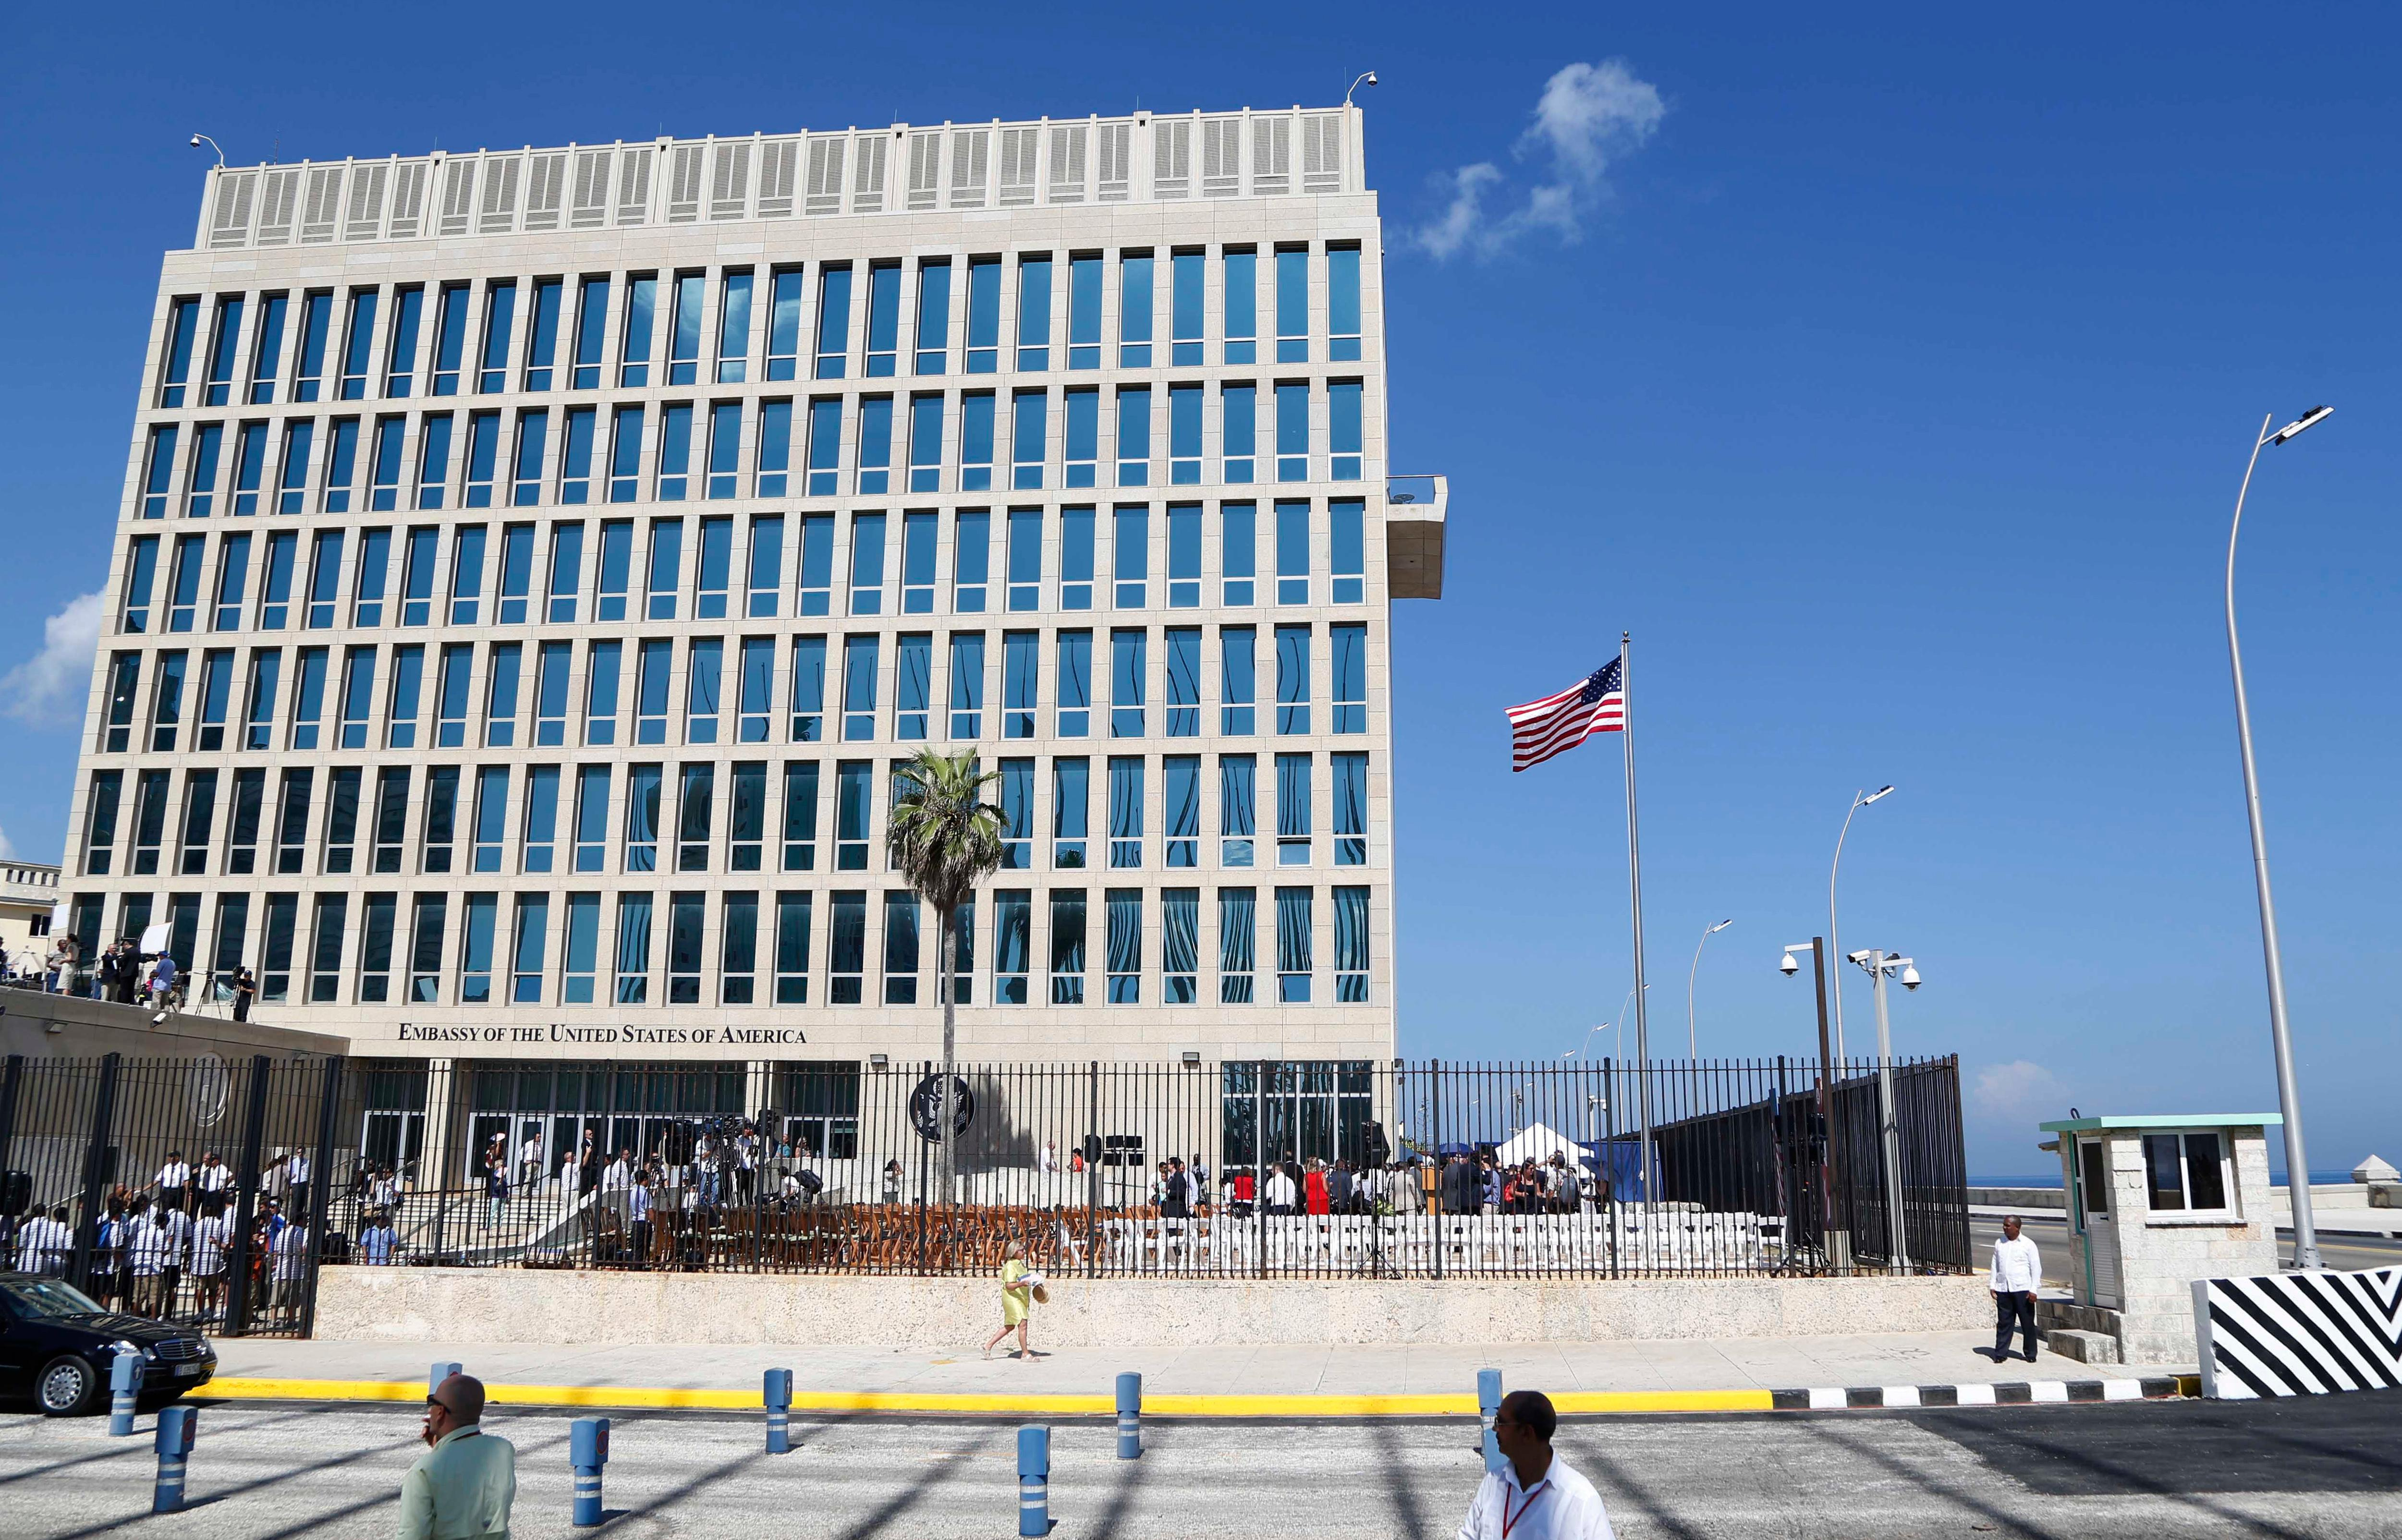 FILE - In this Aug. 14, 2015, file photo, a U.S. flag flies at the U.S. embassy in Havana, Cuba. Senior U.S. officials say the United States is pulling roughly 60 percent of its staff out of Cuba and warning American travelers not to visit. (AP Photo/Desmond Boylan, File)